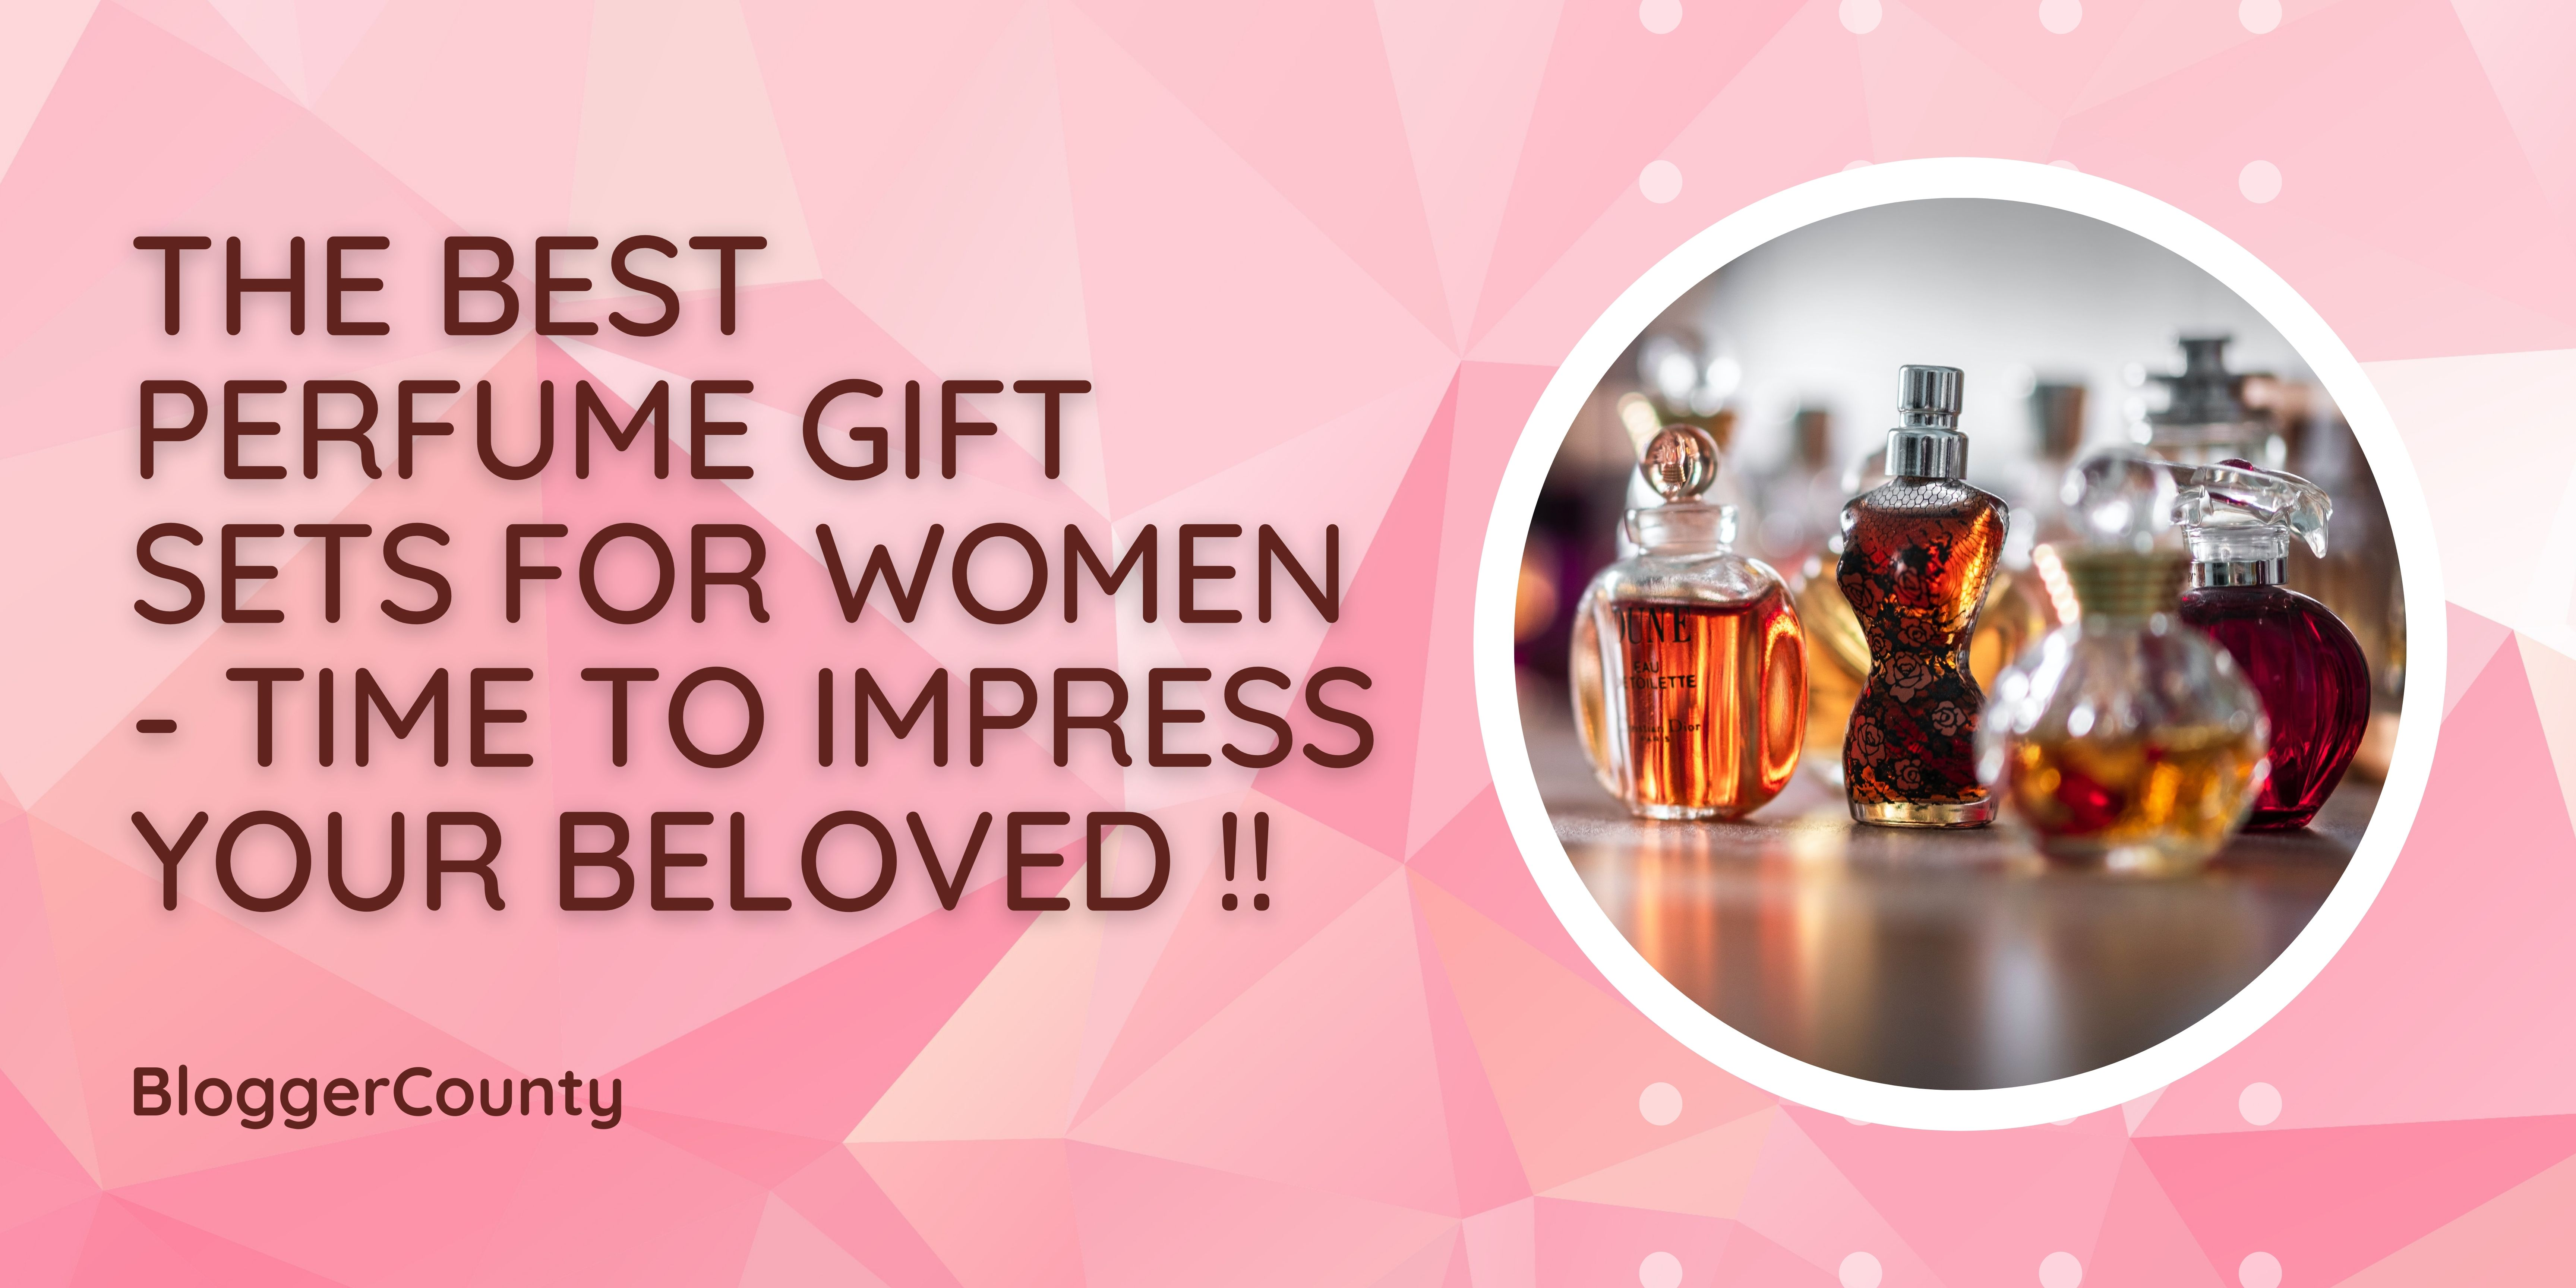 The Best Perfume Gift Sets for Women - Time to Impress Your Beloved !!